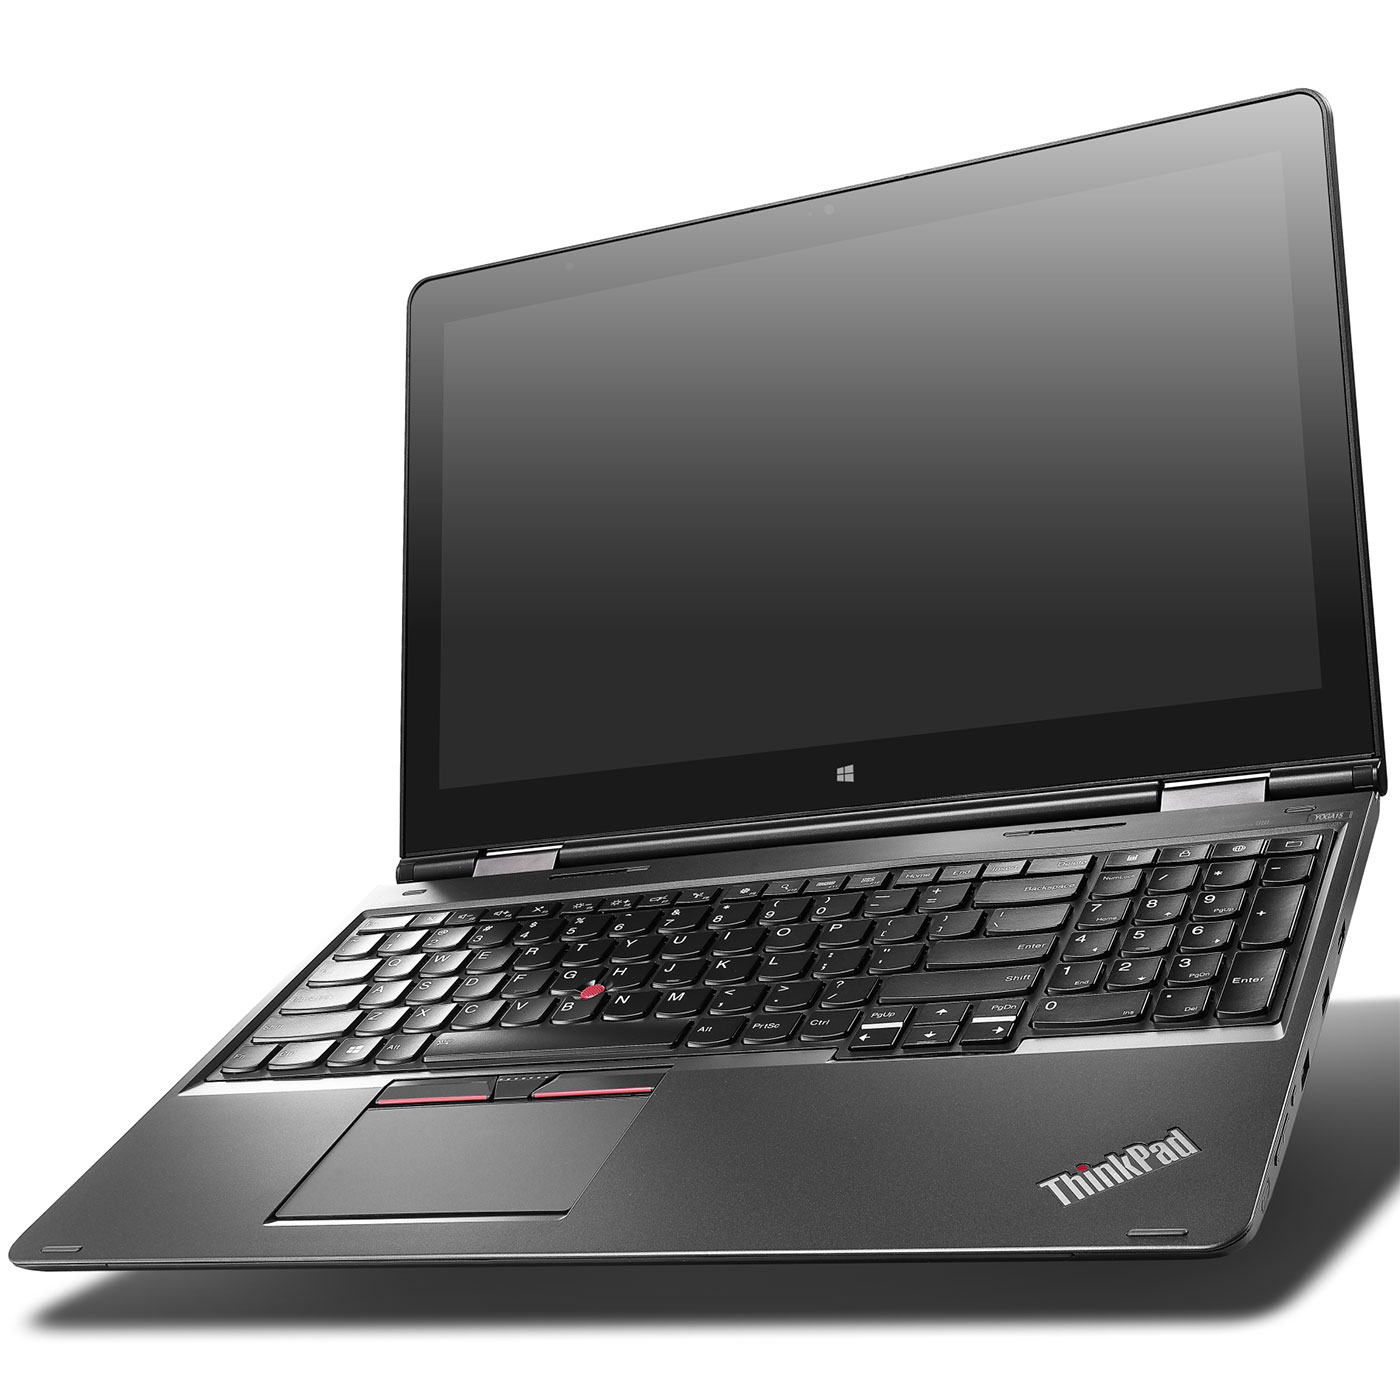 lenovo thinkpad yoga 15 20dq0039fr pc portable lenovo. Black Bedroom Furniture Sets. Home Design Ideas